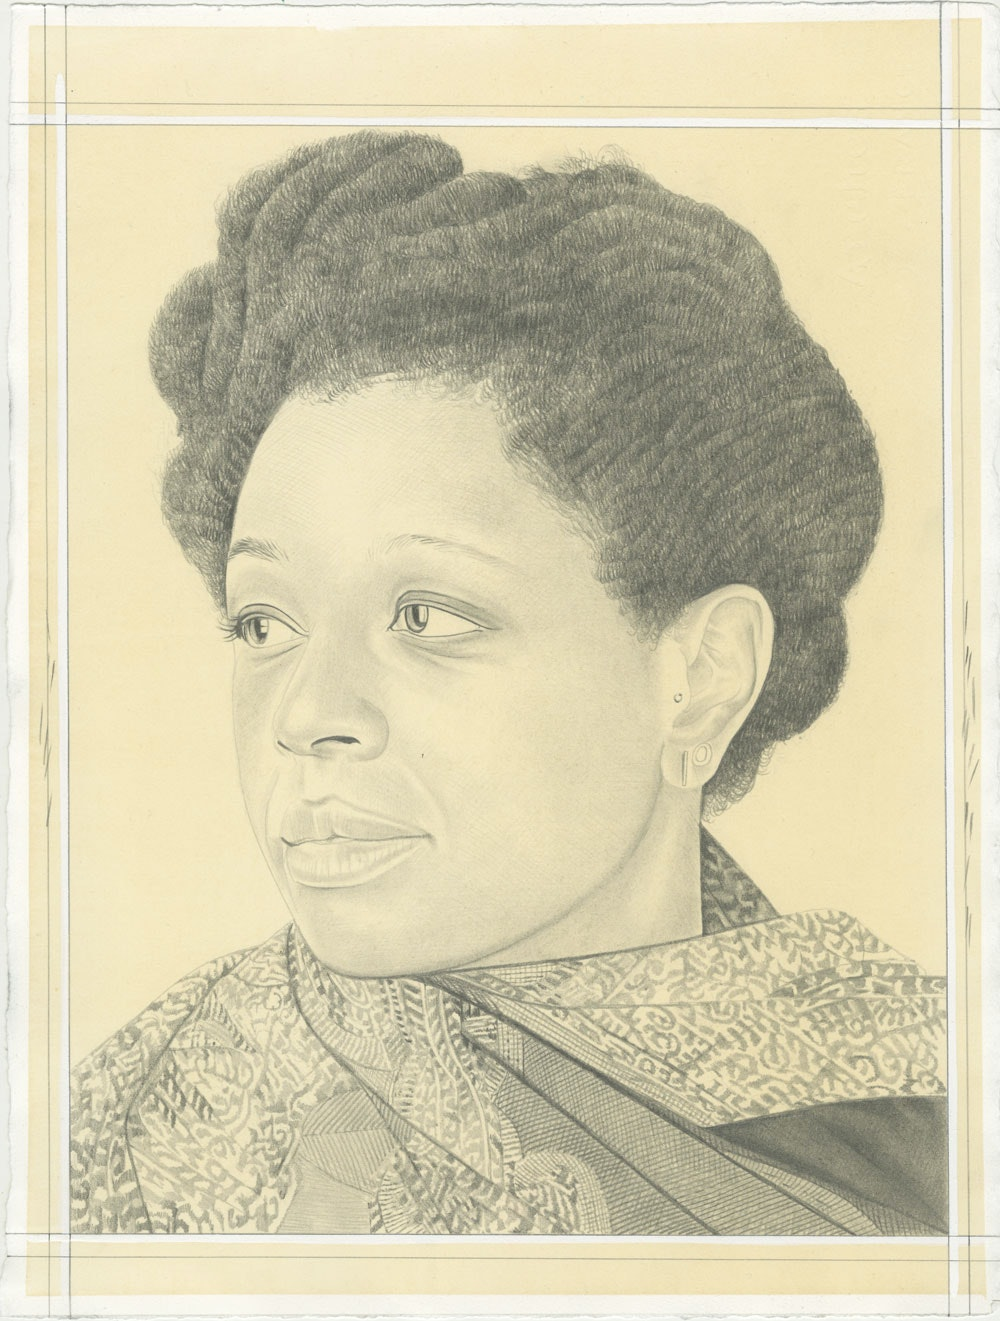 Allison Janae Hamilton, pencil on paper by Phong H. Bui.